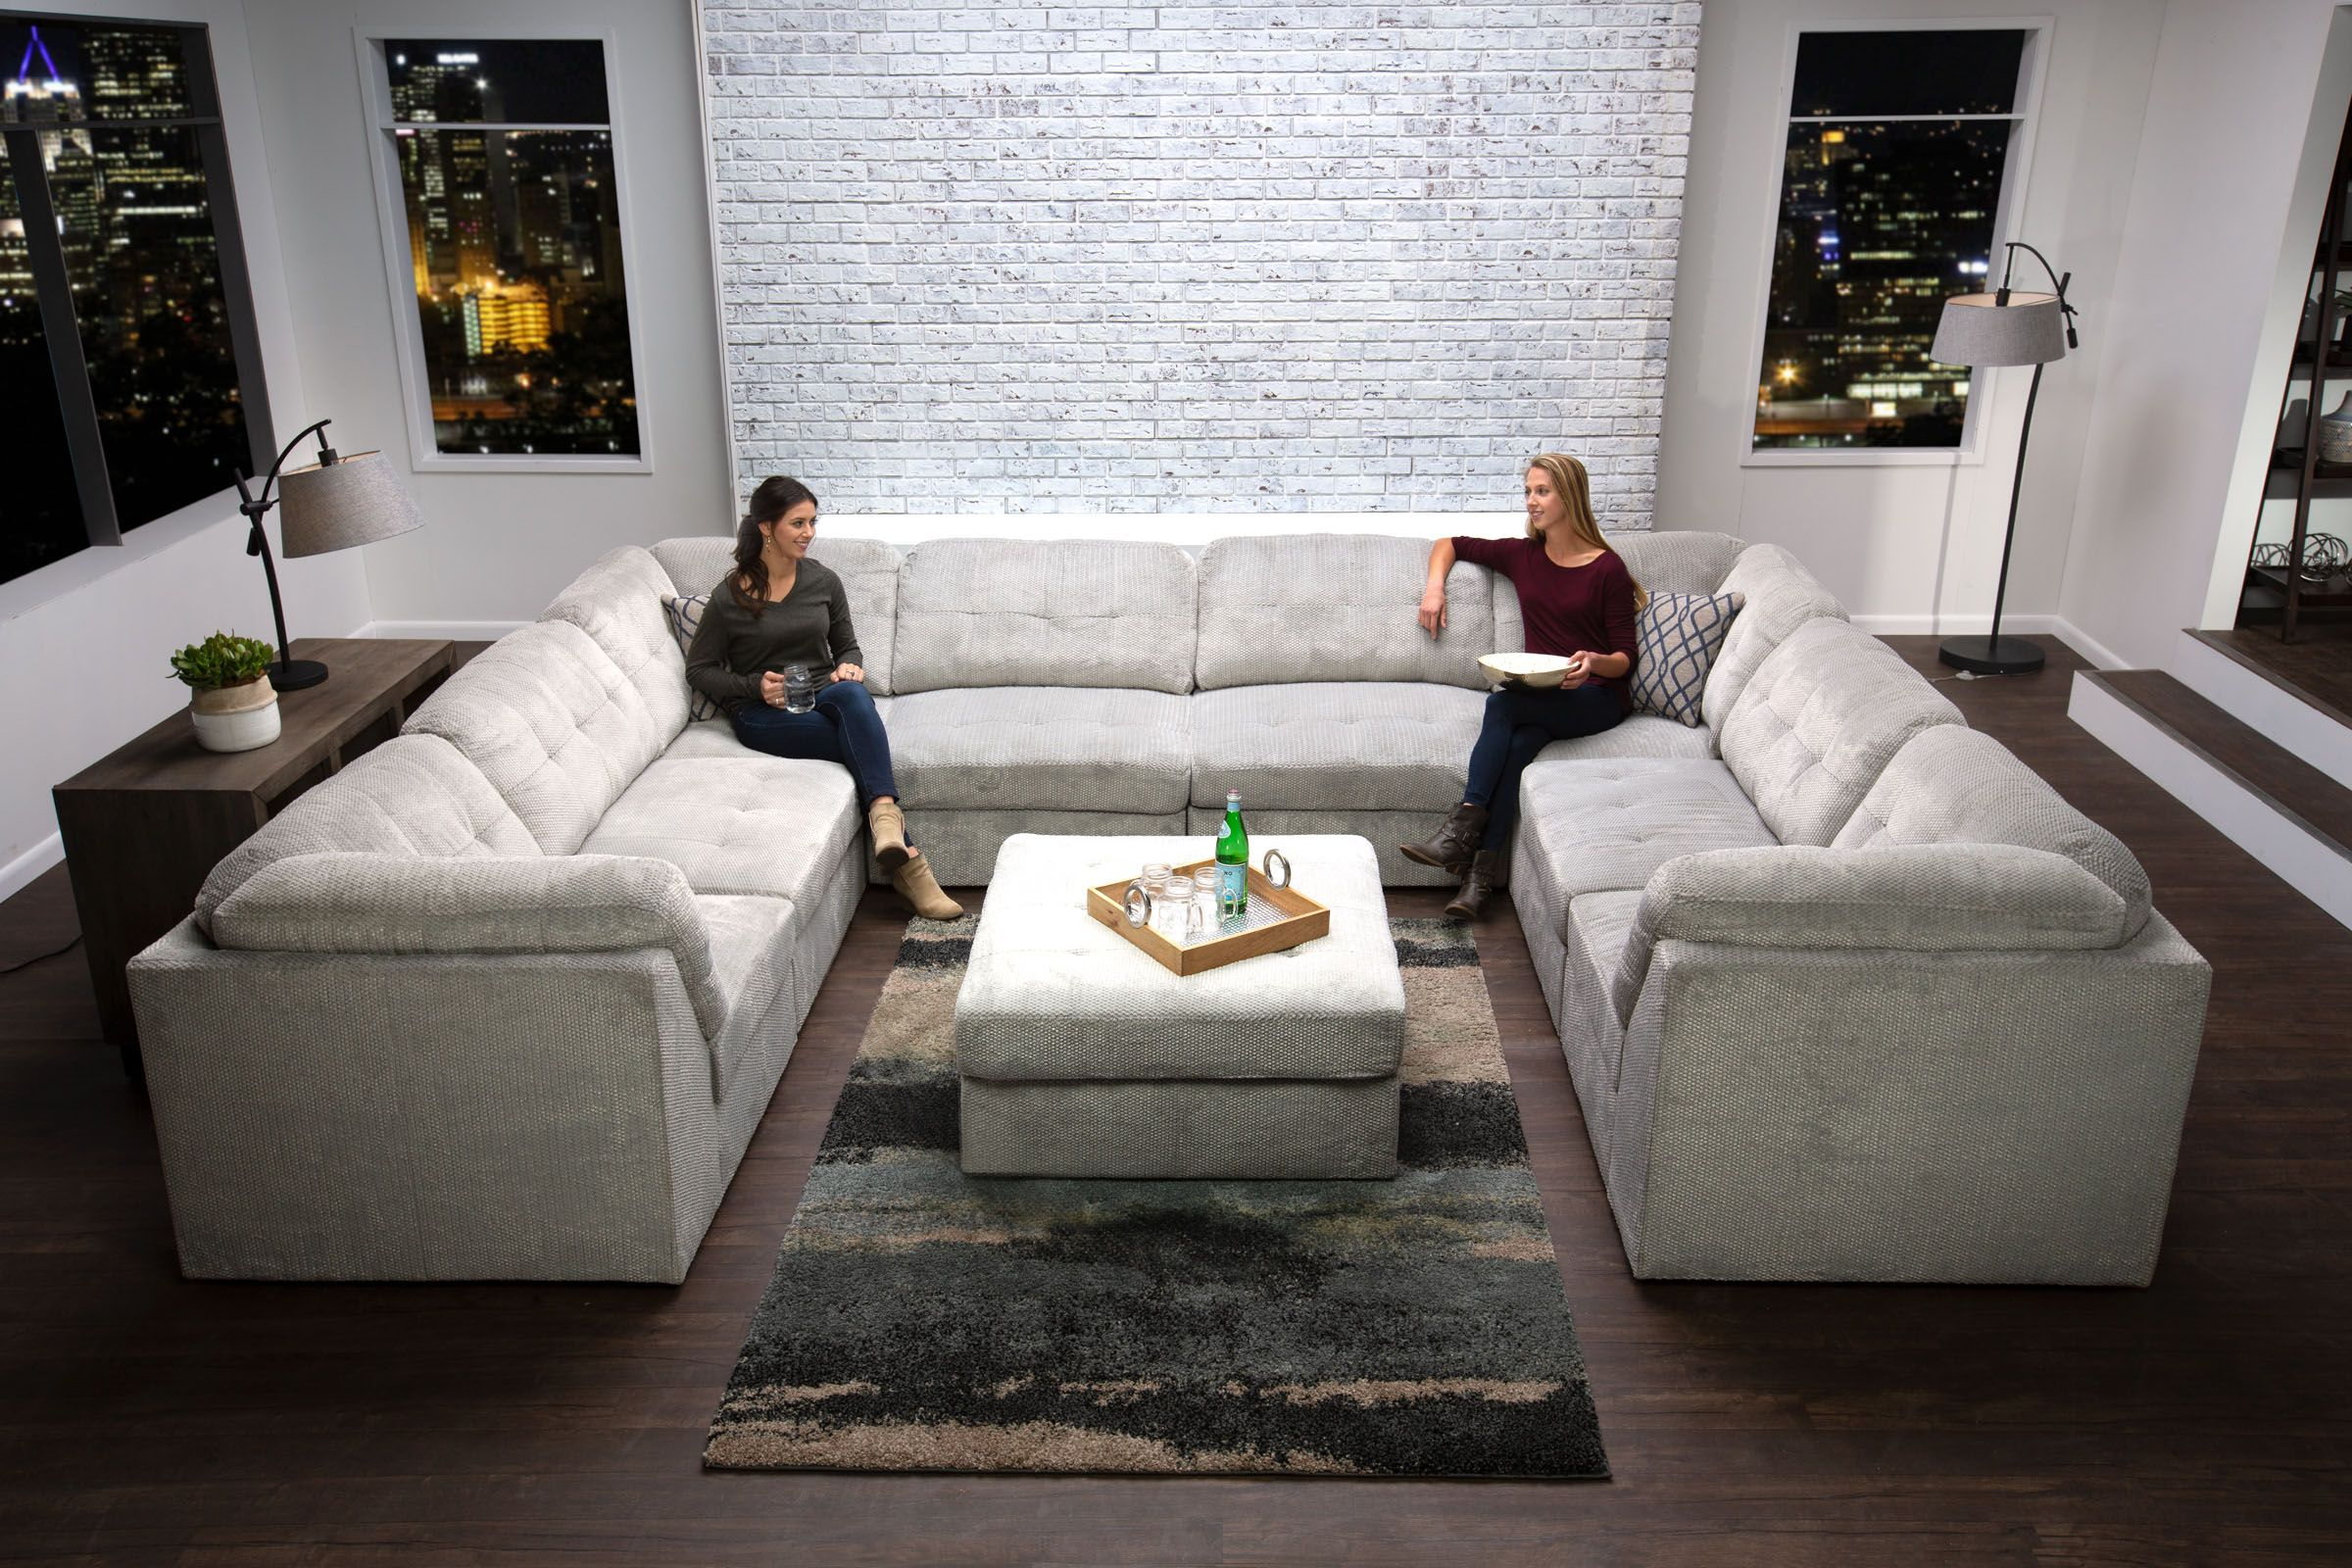 Granada 8 Piece Sectional Ottoman Products In 2019 inside 8 Piece Living Room Set